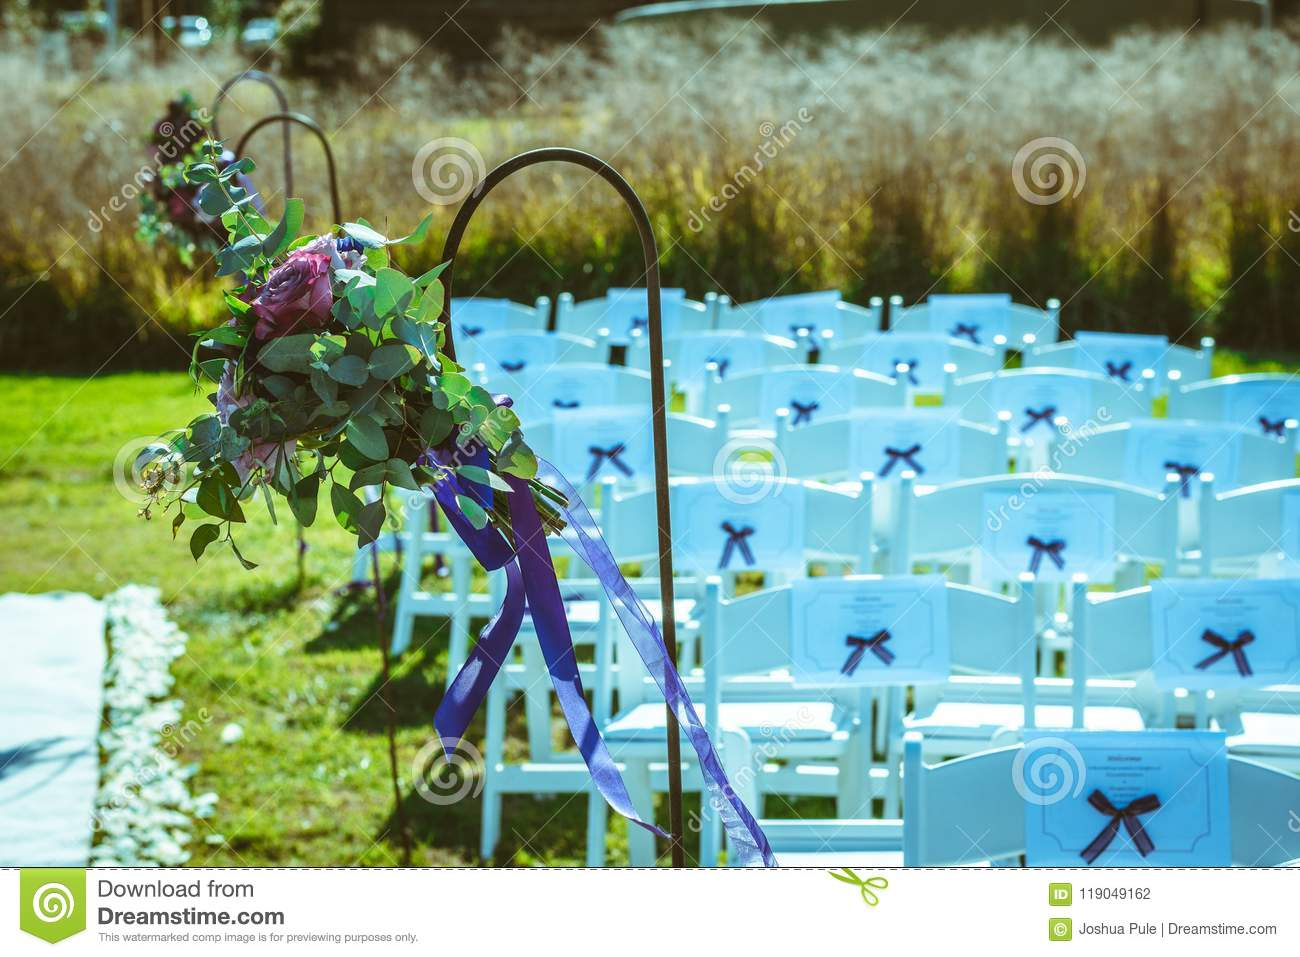 Hinged Flowers Decorating The Pathway Outdoor Wedding Stock Photo